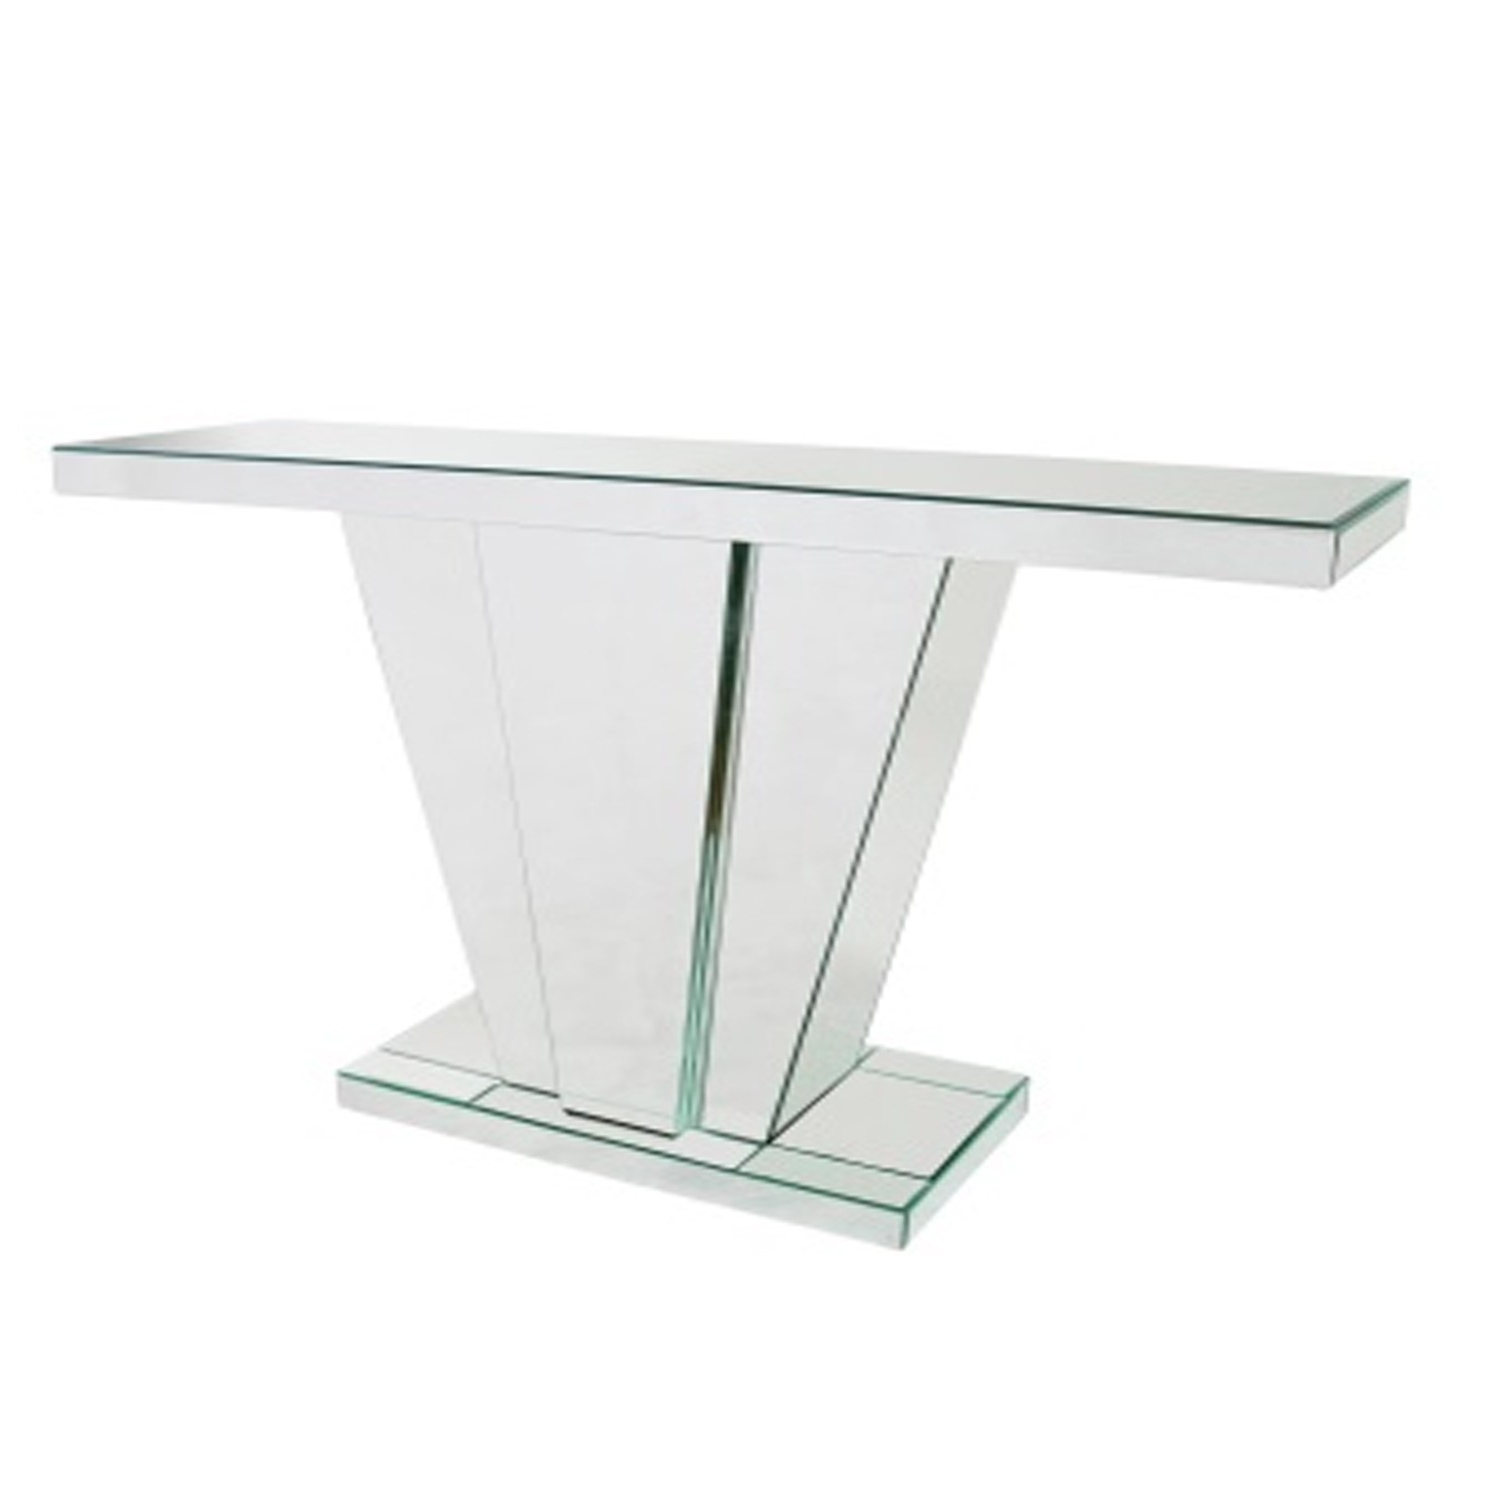 V Frame Mirrored Console Table Abreo Home Furniture Regarding Frame Console Tables (View 17 of 20)